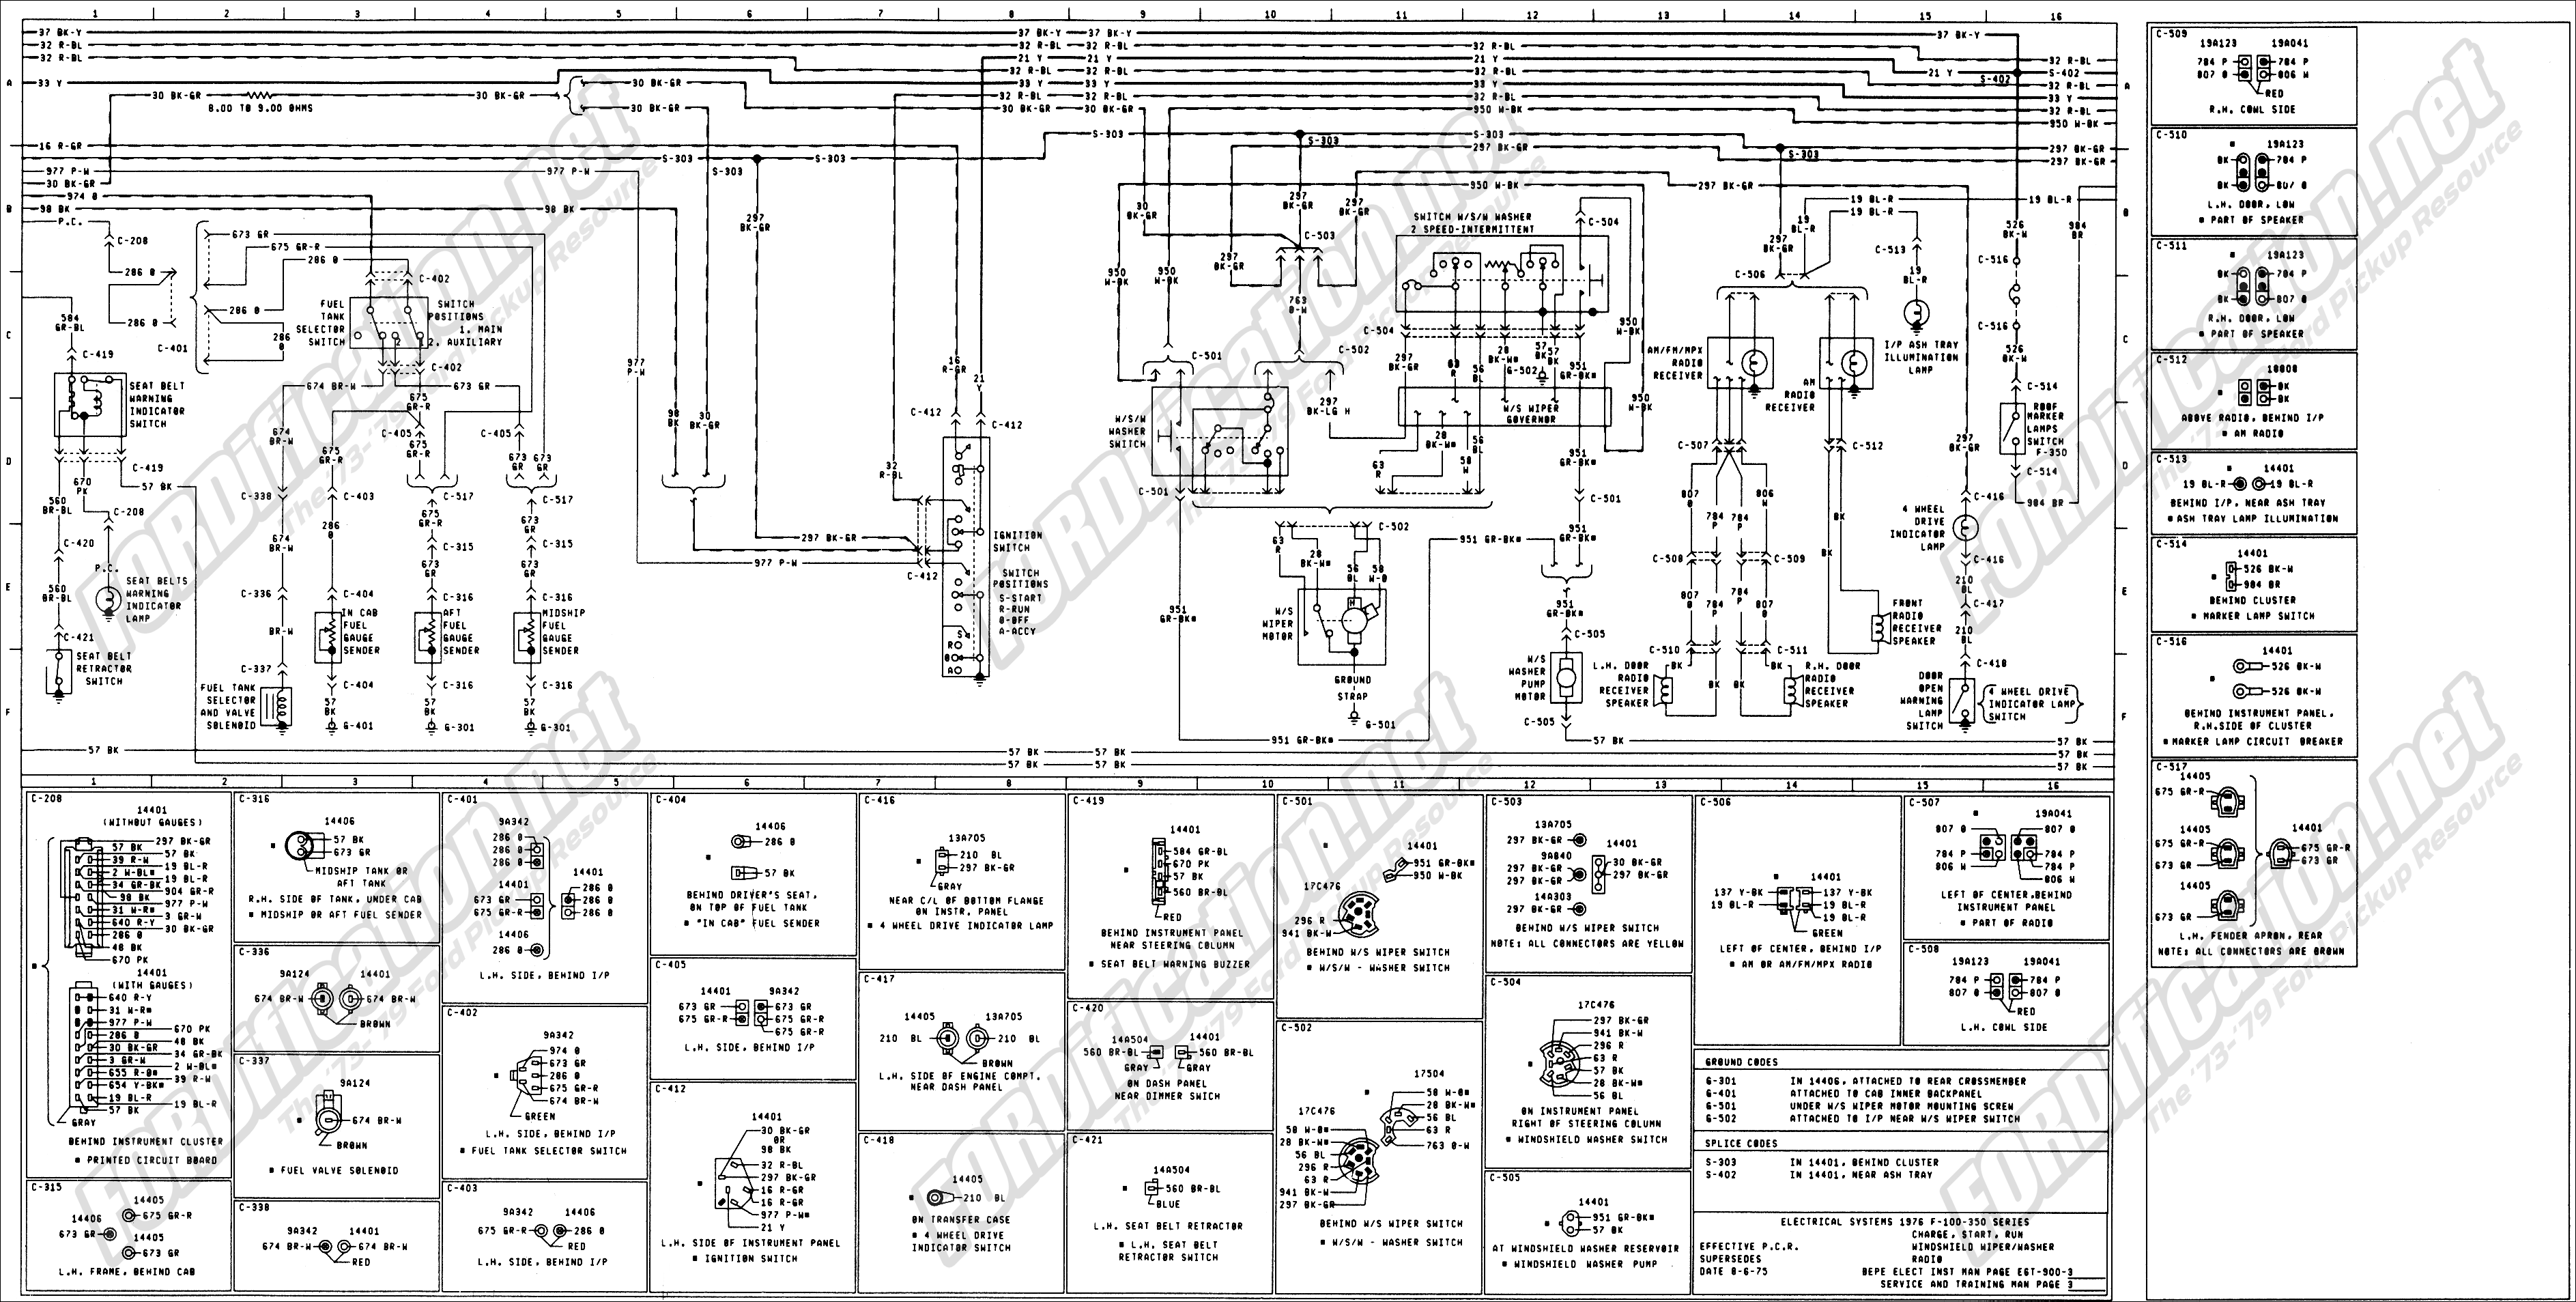 86 F150 Wiring Diagram For Choke Worksheet And 1987 Ford F 150 Fuel Pump 1973 1979 Truck Diagrams Schematics Fordification Net Rh 1986 Engine 1994